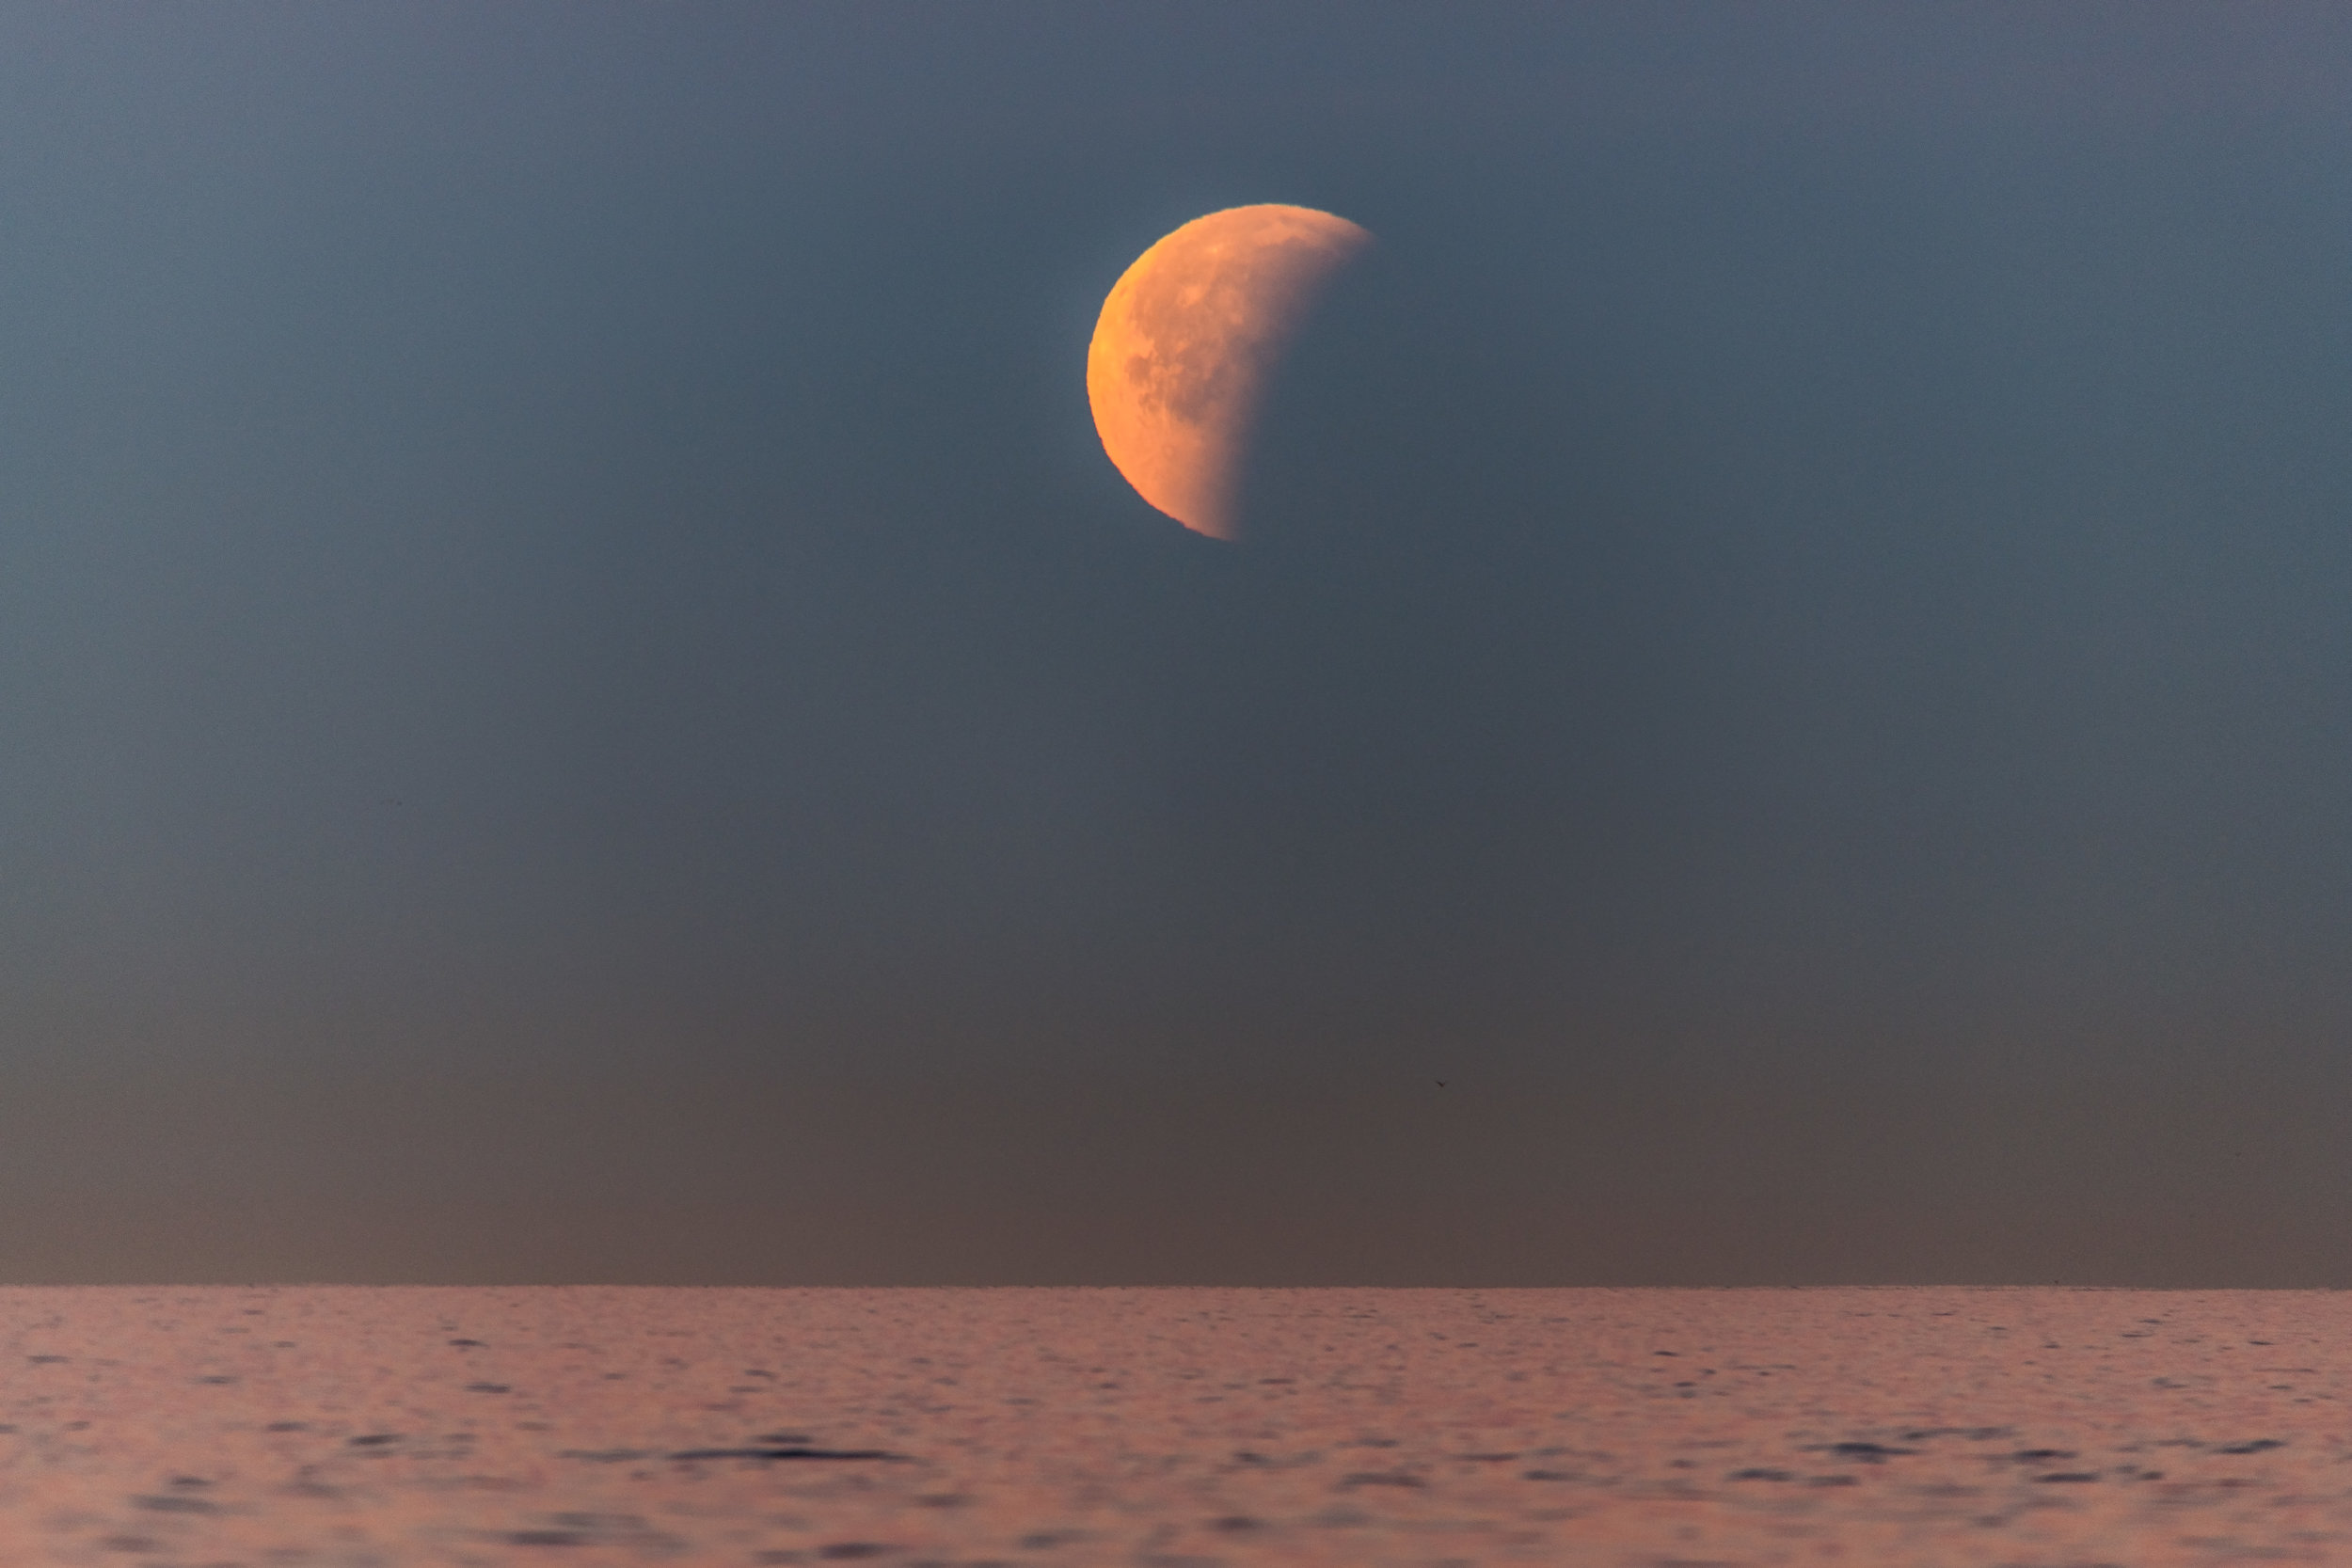 The eclipsing moon getting ready to set over The Pacific Ocean.